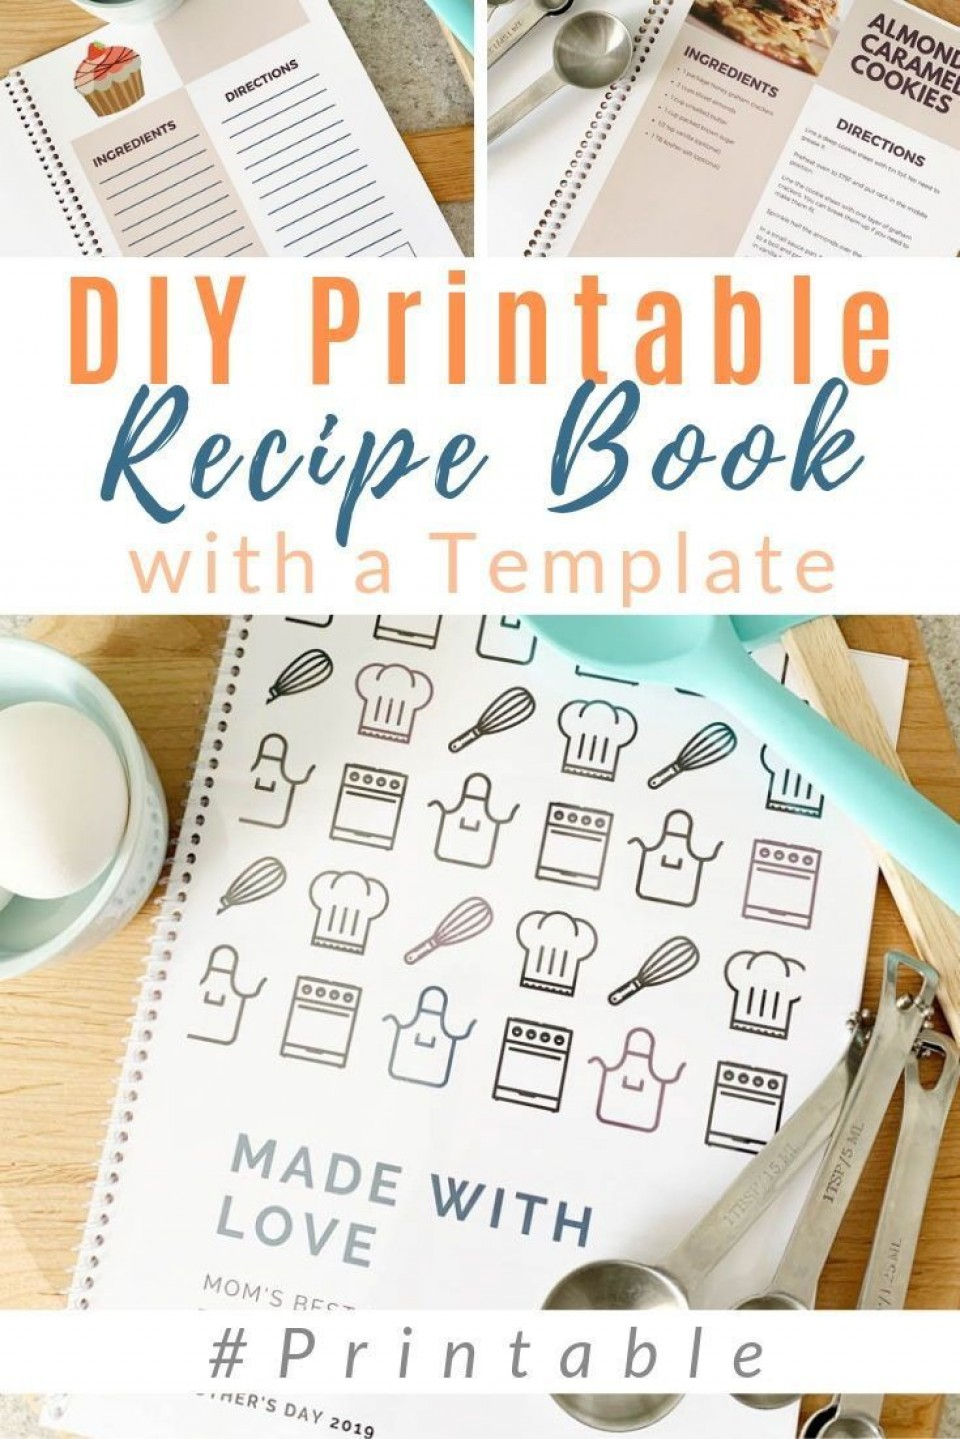 002 Fascinating Make Your Own Cookbook Template Free Photo  Download960